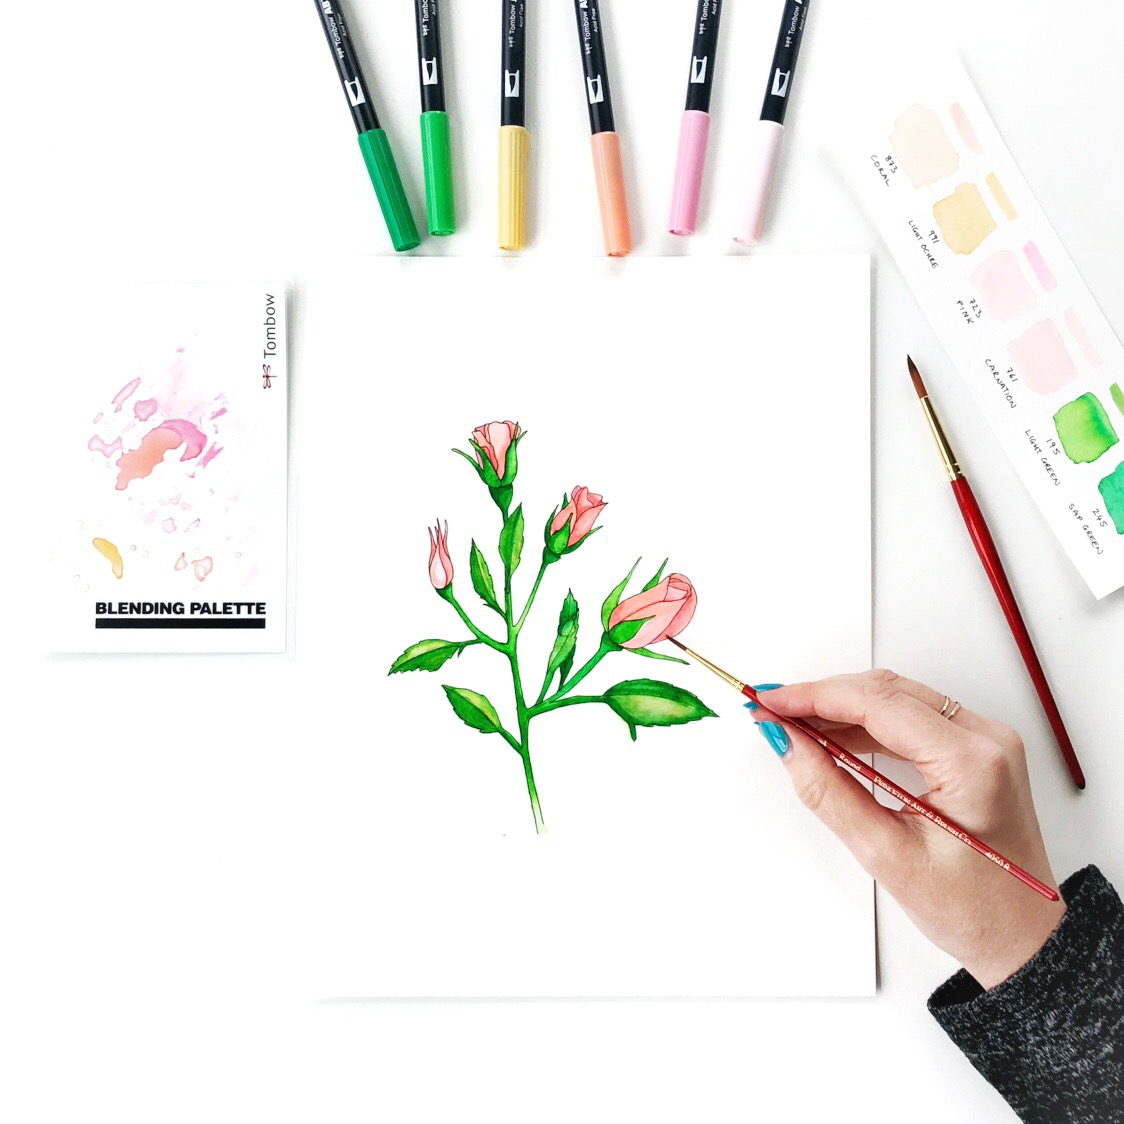 Create Watercolor Flowers Using Markers by Jessica Mack of BrownPaperBunny.